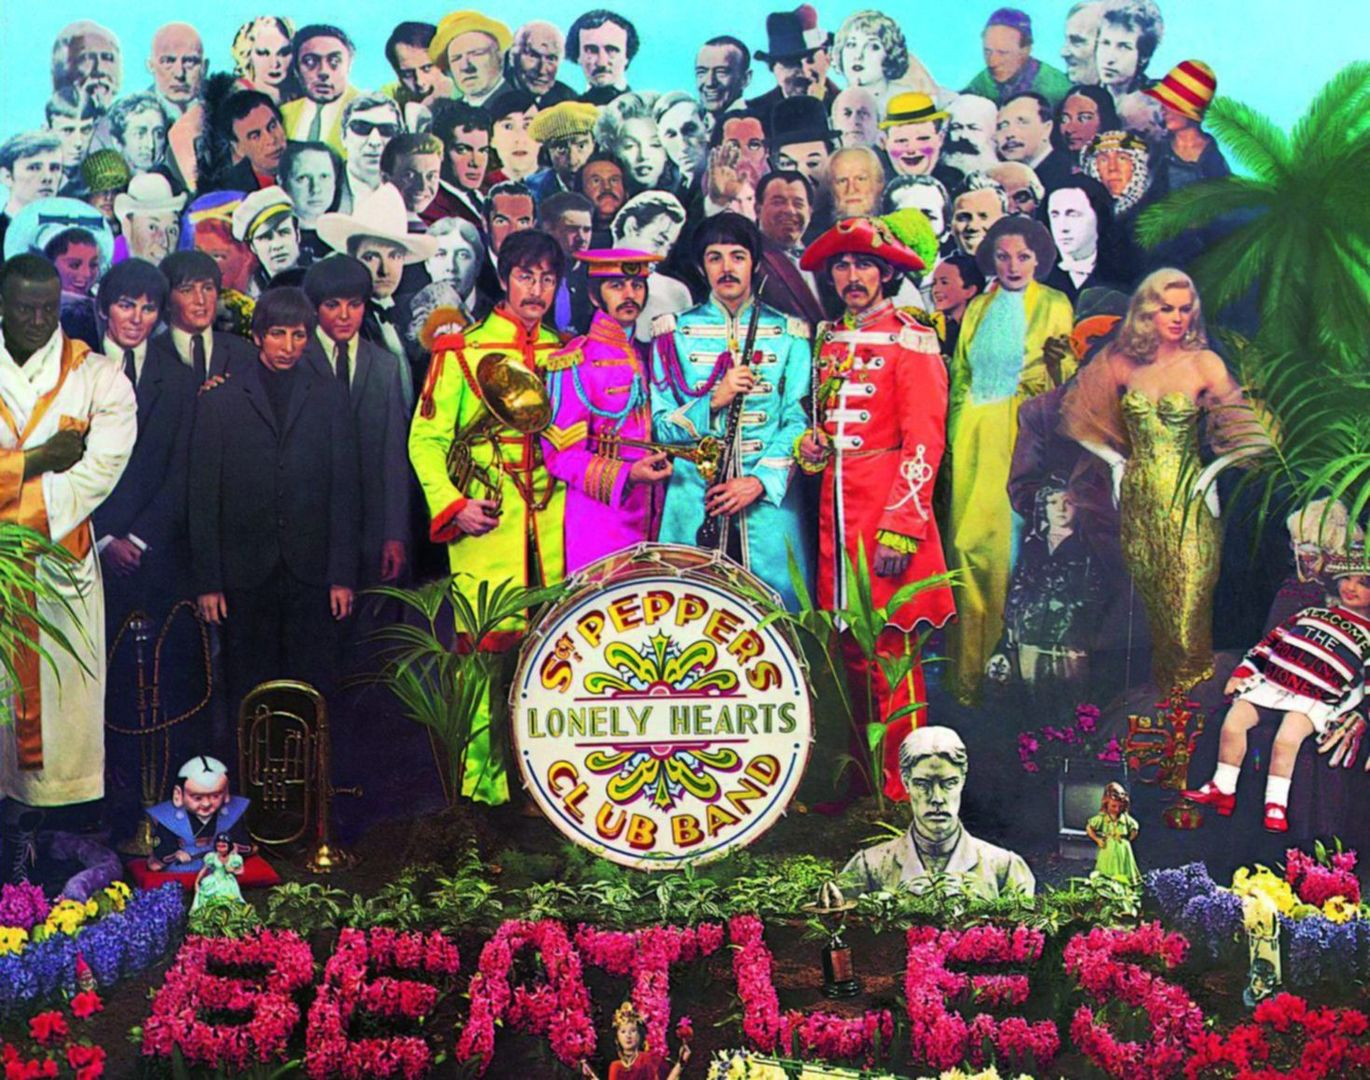 Unverzichtbar: Sgt. Pepper's Lonely Hearts Club Band (1967)